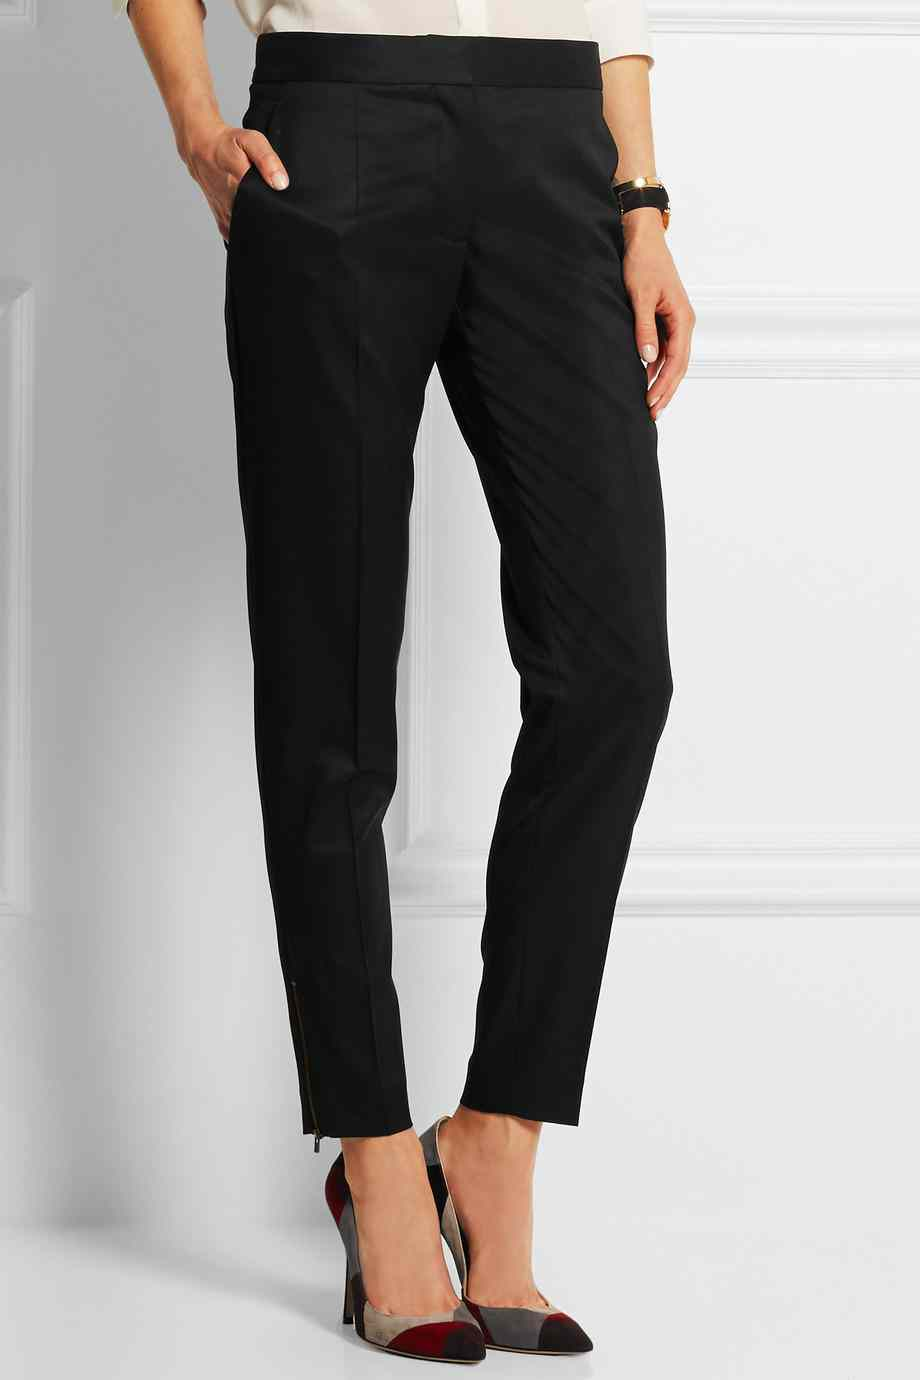 Stella McCartney - pantalon (375€)